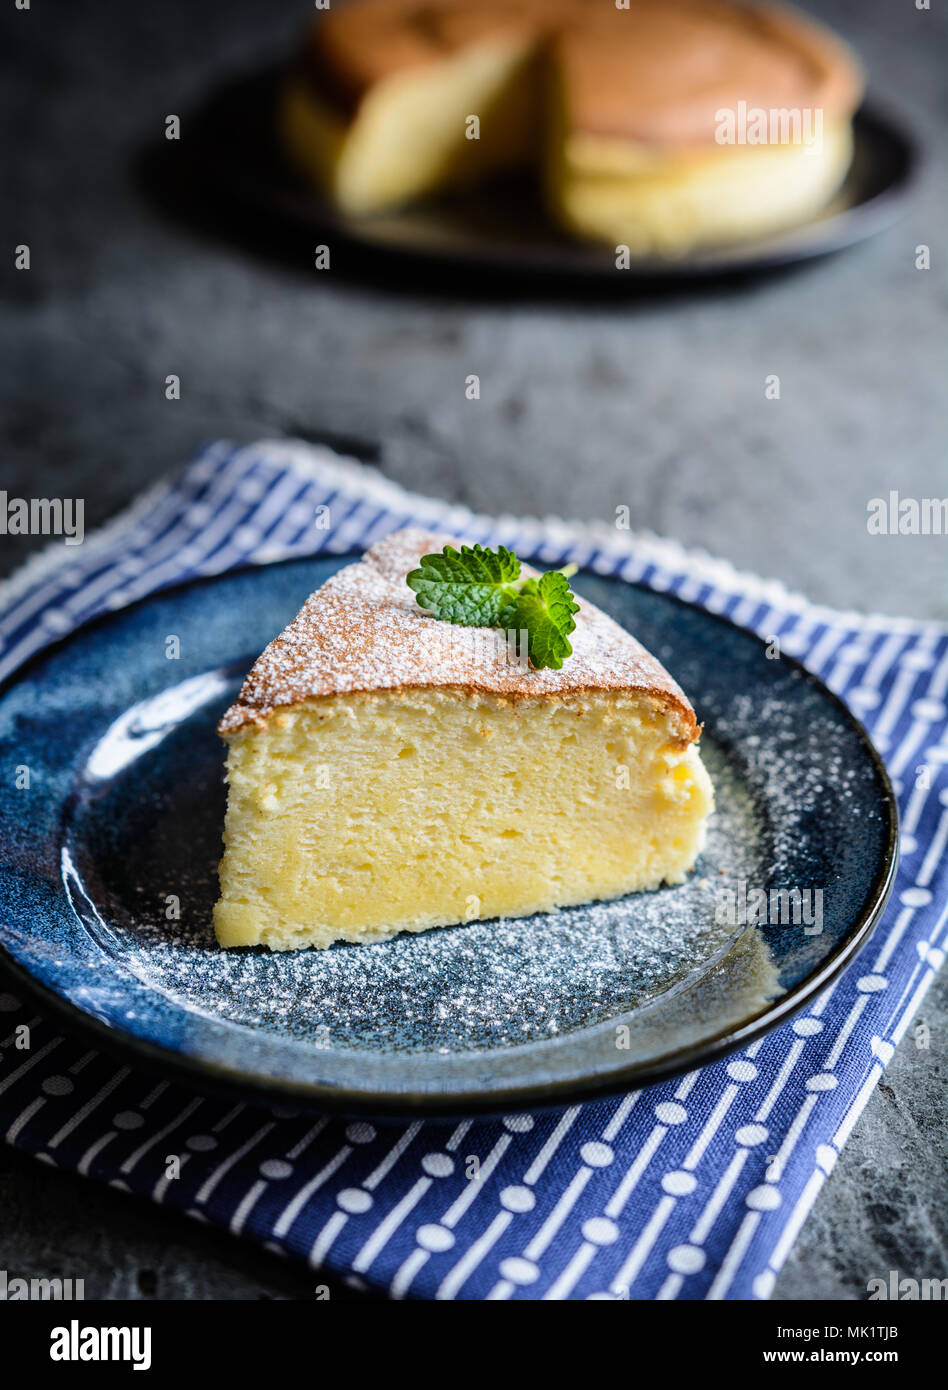 A slice of delicious Japanese cheesecake with powdered sugar icing - Stock Image